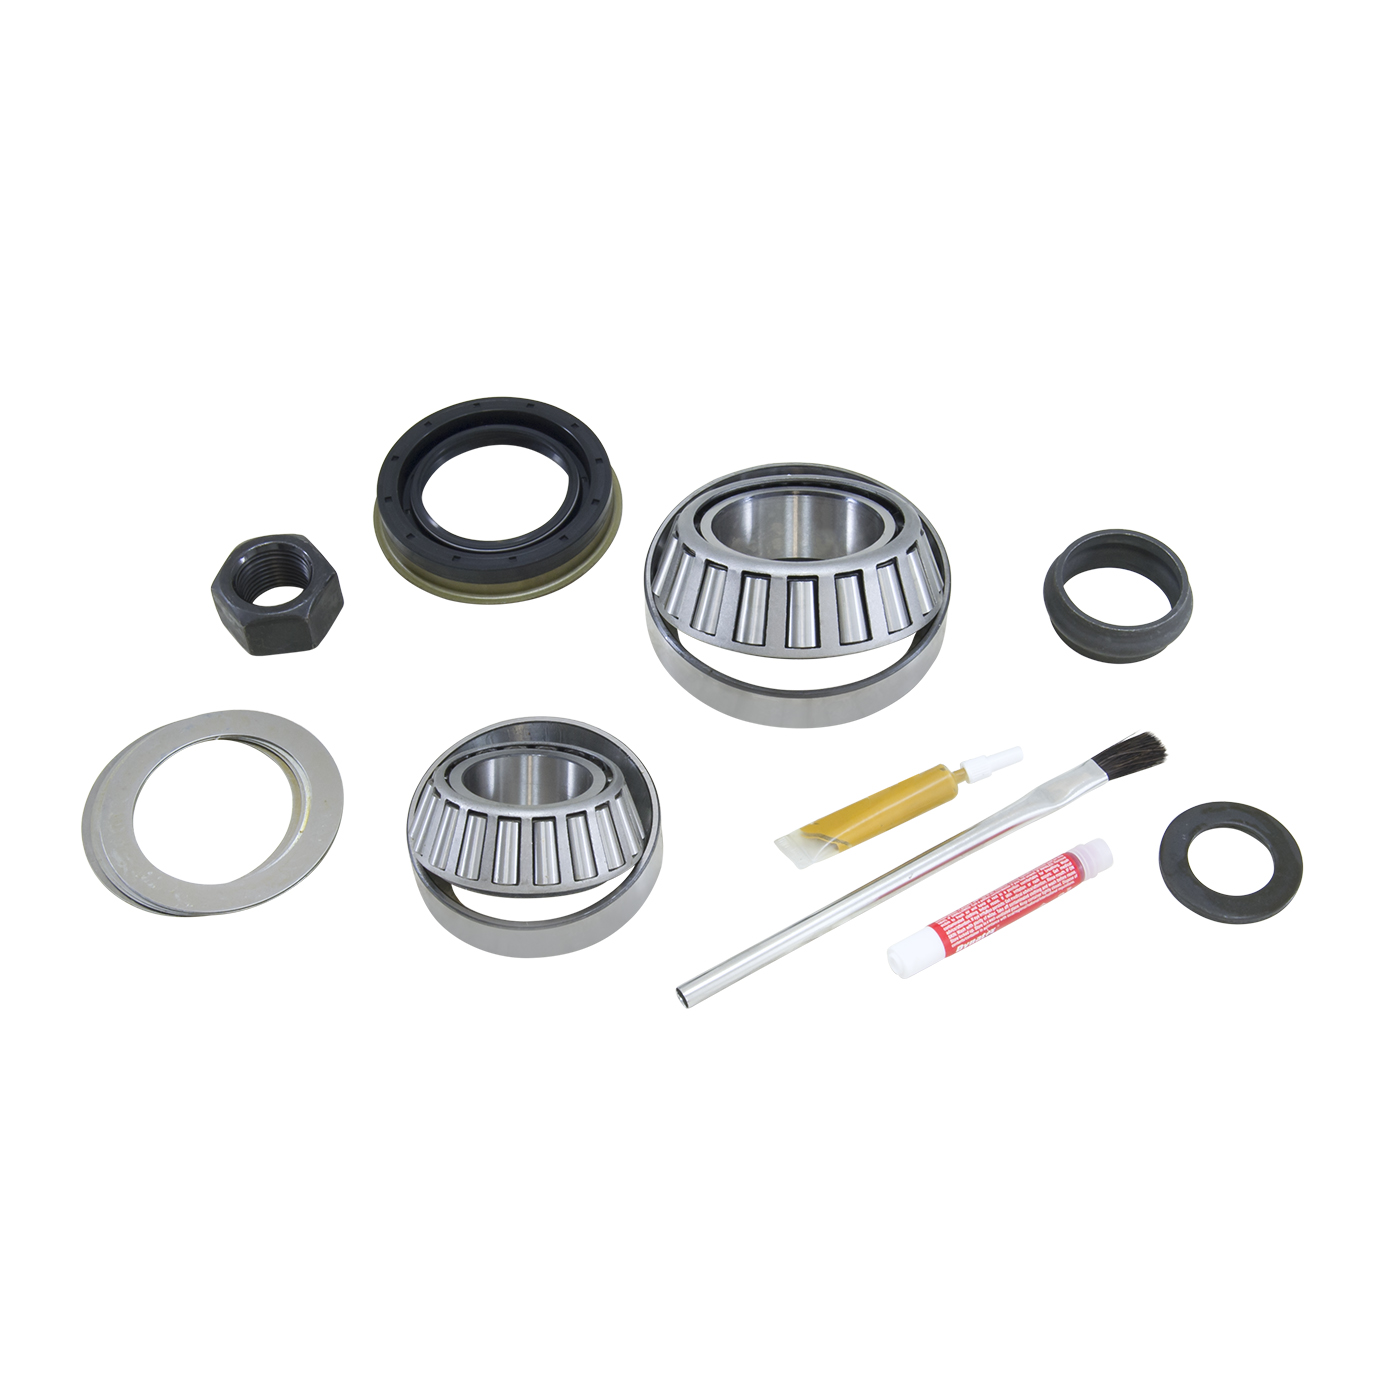 ZPKC8.25-B - USA Standard pinion installation kit for '76 and up Chrysler 8.25